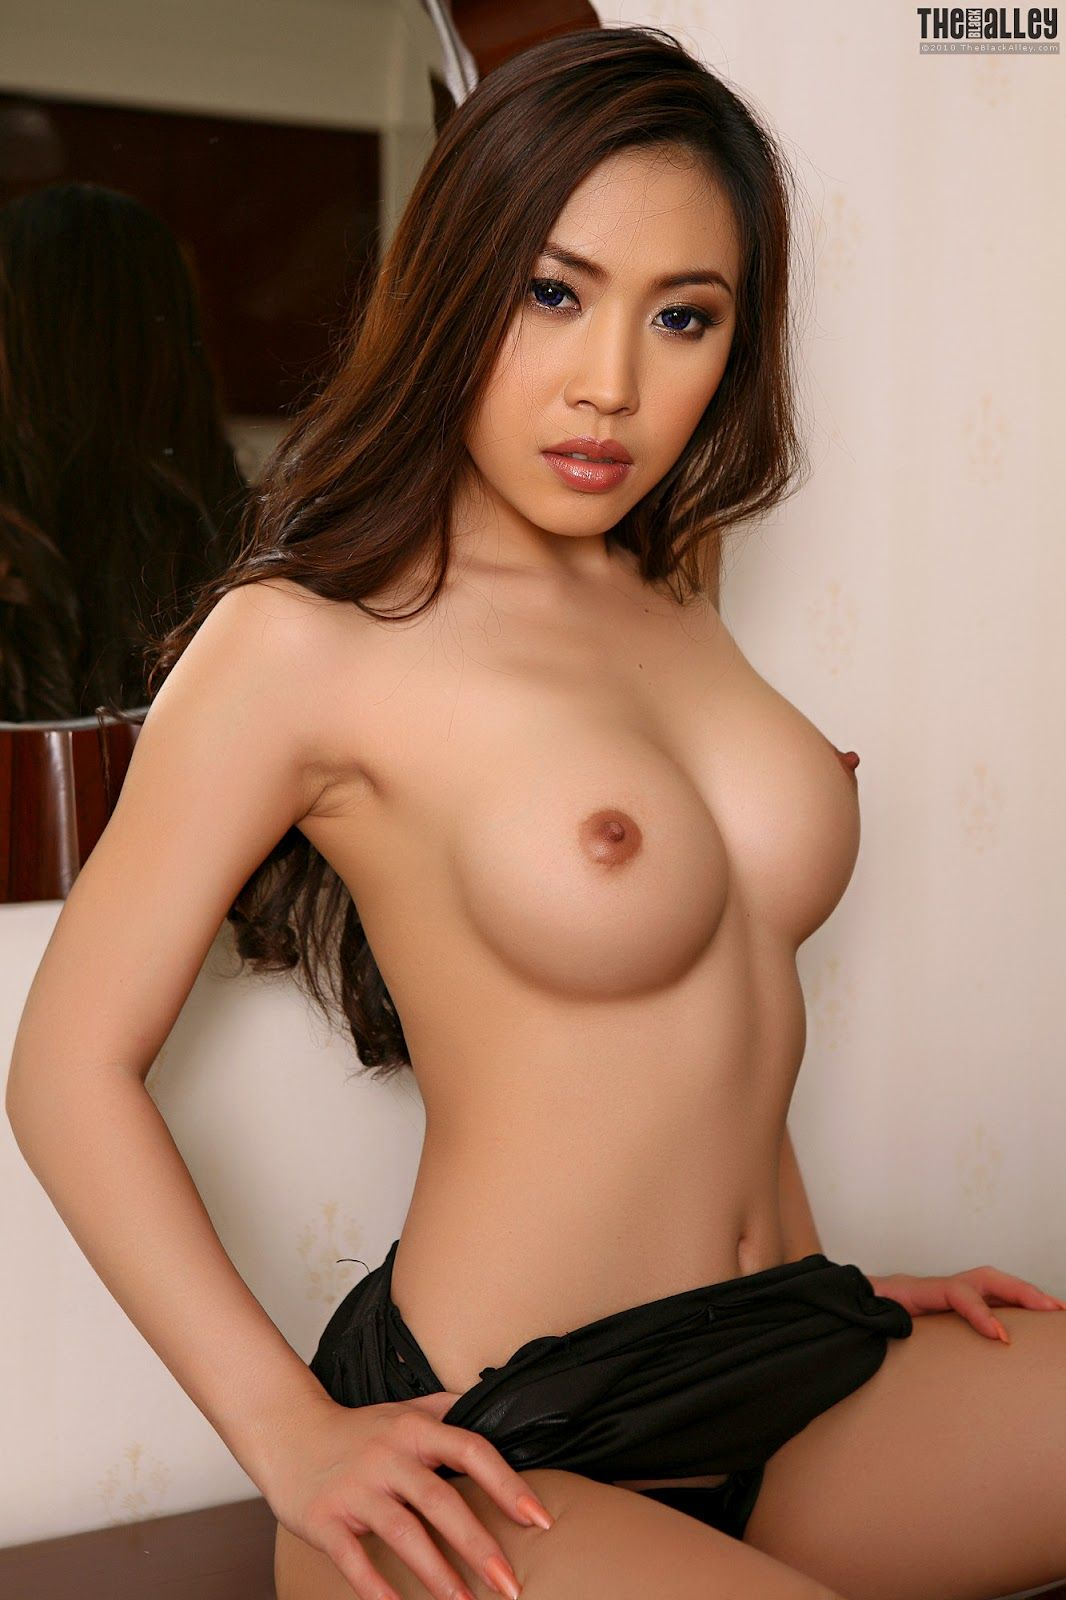 Perfect Asian girl naked